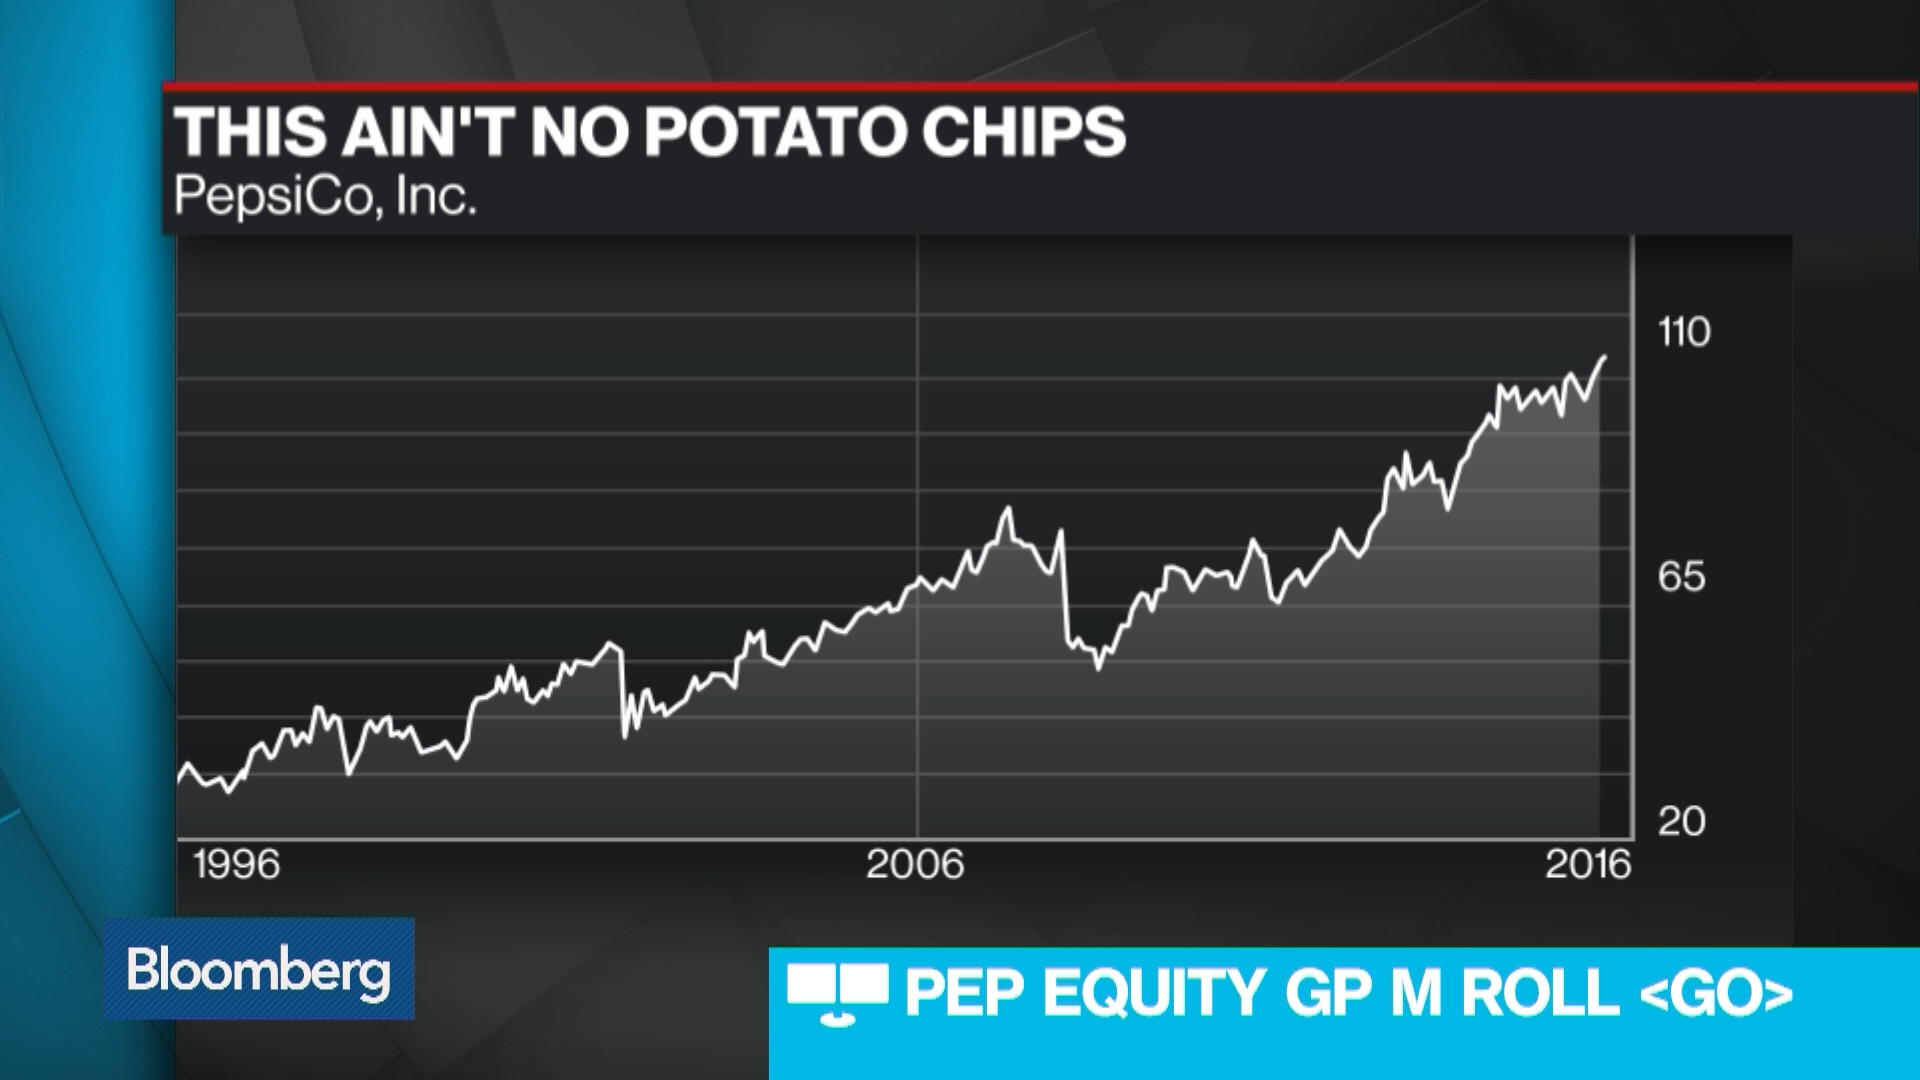 building a portfolio on stable growing stocks � bloomberg